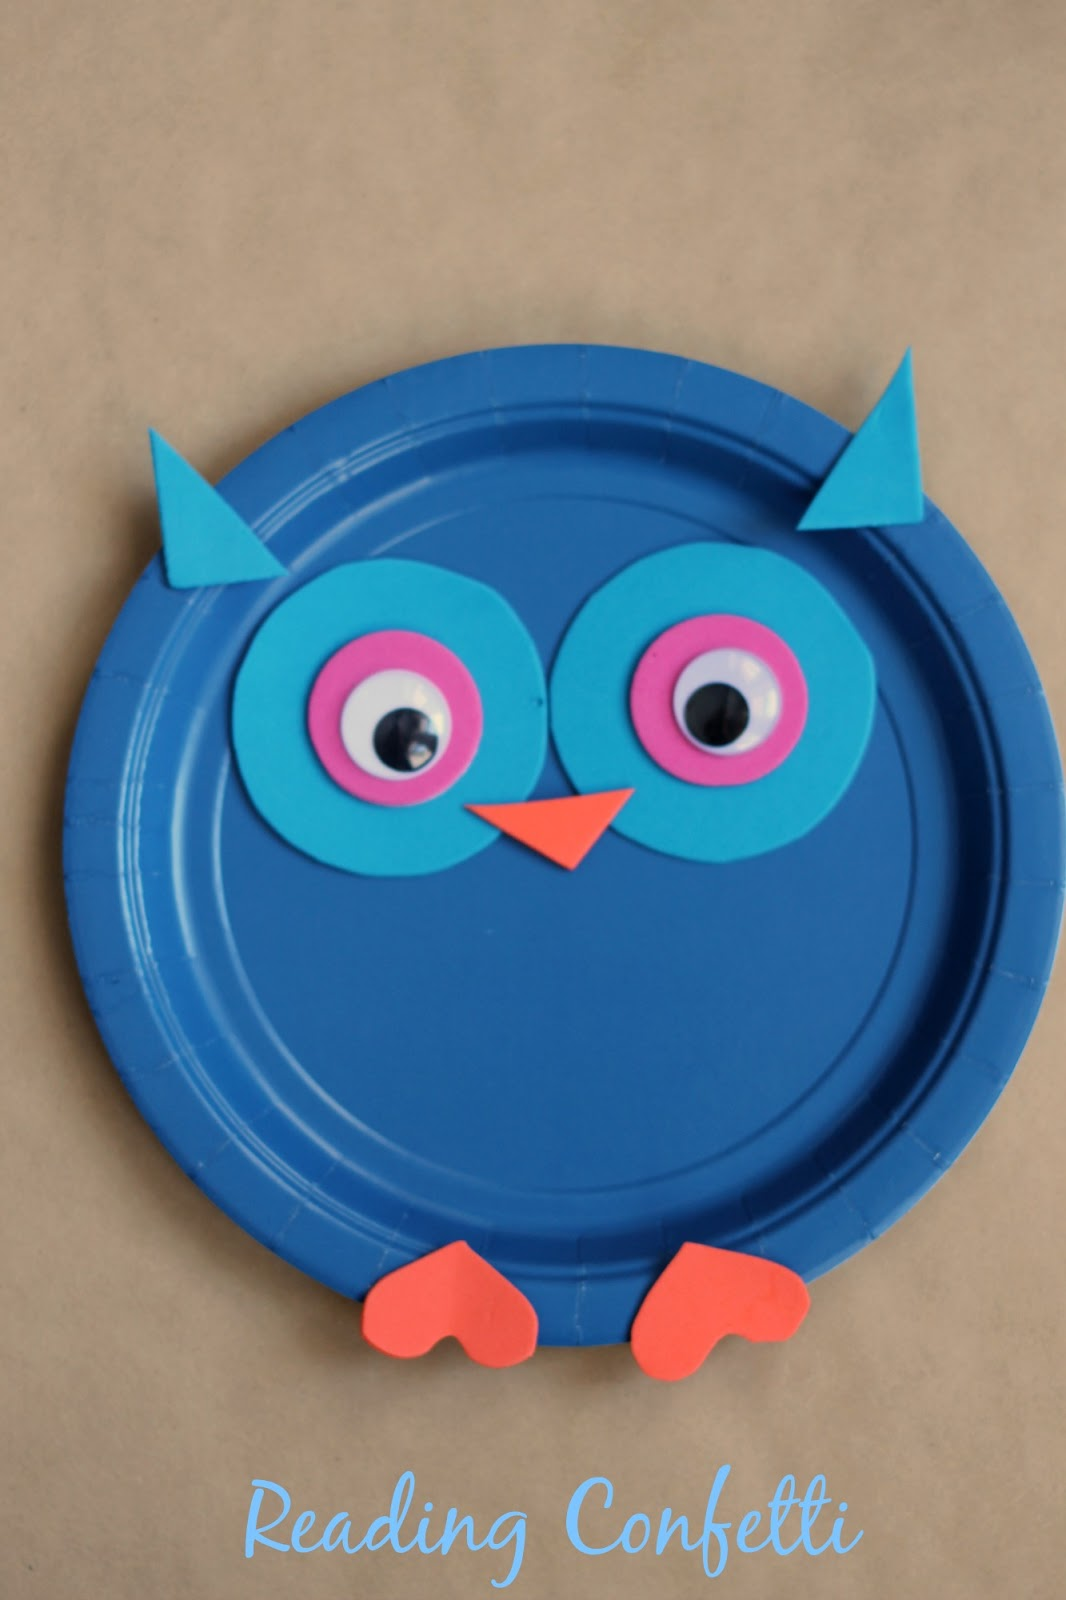 owl paper plates Choose from a variety of owl plate designs or create your own shop now for custom plates & more  blue and gray baby owl baby shower theme paper plate $160 15% off with code zaugustsitez boy baby owl - shower and gender reveal plate $4850 15% off with code zaugustsitez patriotic owl paper plates $170.